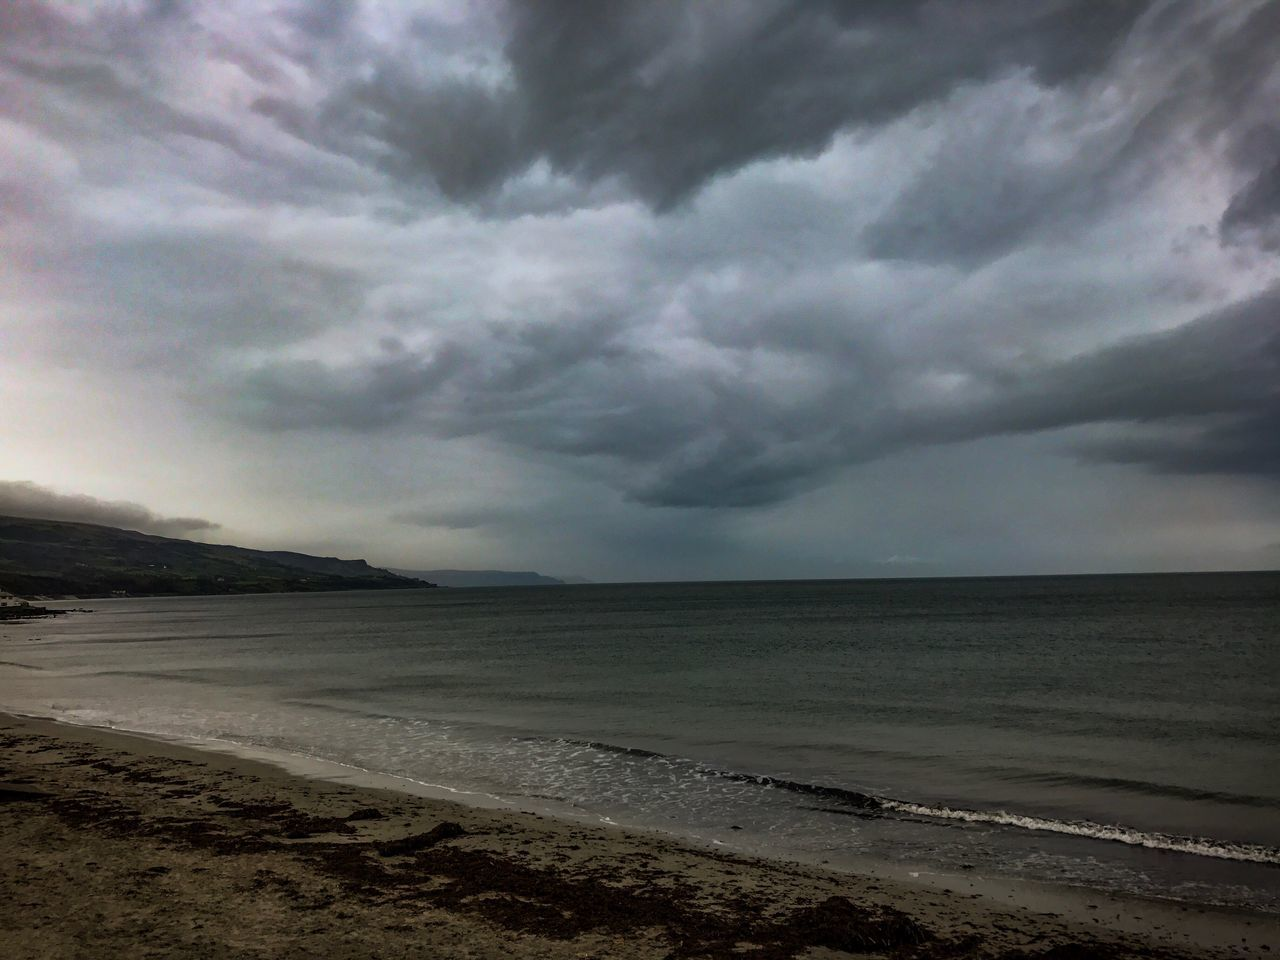 The rain is coming, Ballygally, County Antrim, Northern Ireland, North Coast, Cloud - Sky Sky Scenics Nature Sea Beach Tranquil Scene Beauty In Nature Tranquility Water Sand Horizon Over Water No People Outdoors Landscape Storm Cloud Day Travel Destinations EyeEmNewHere The Great Outdoors - 2017 EyeEm Awards